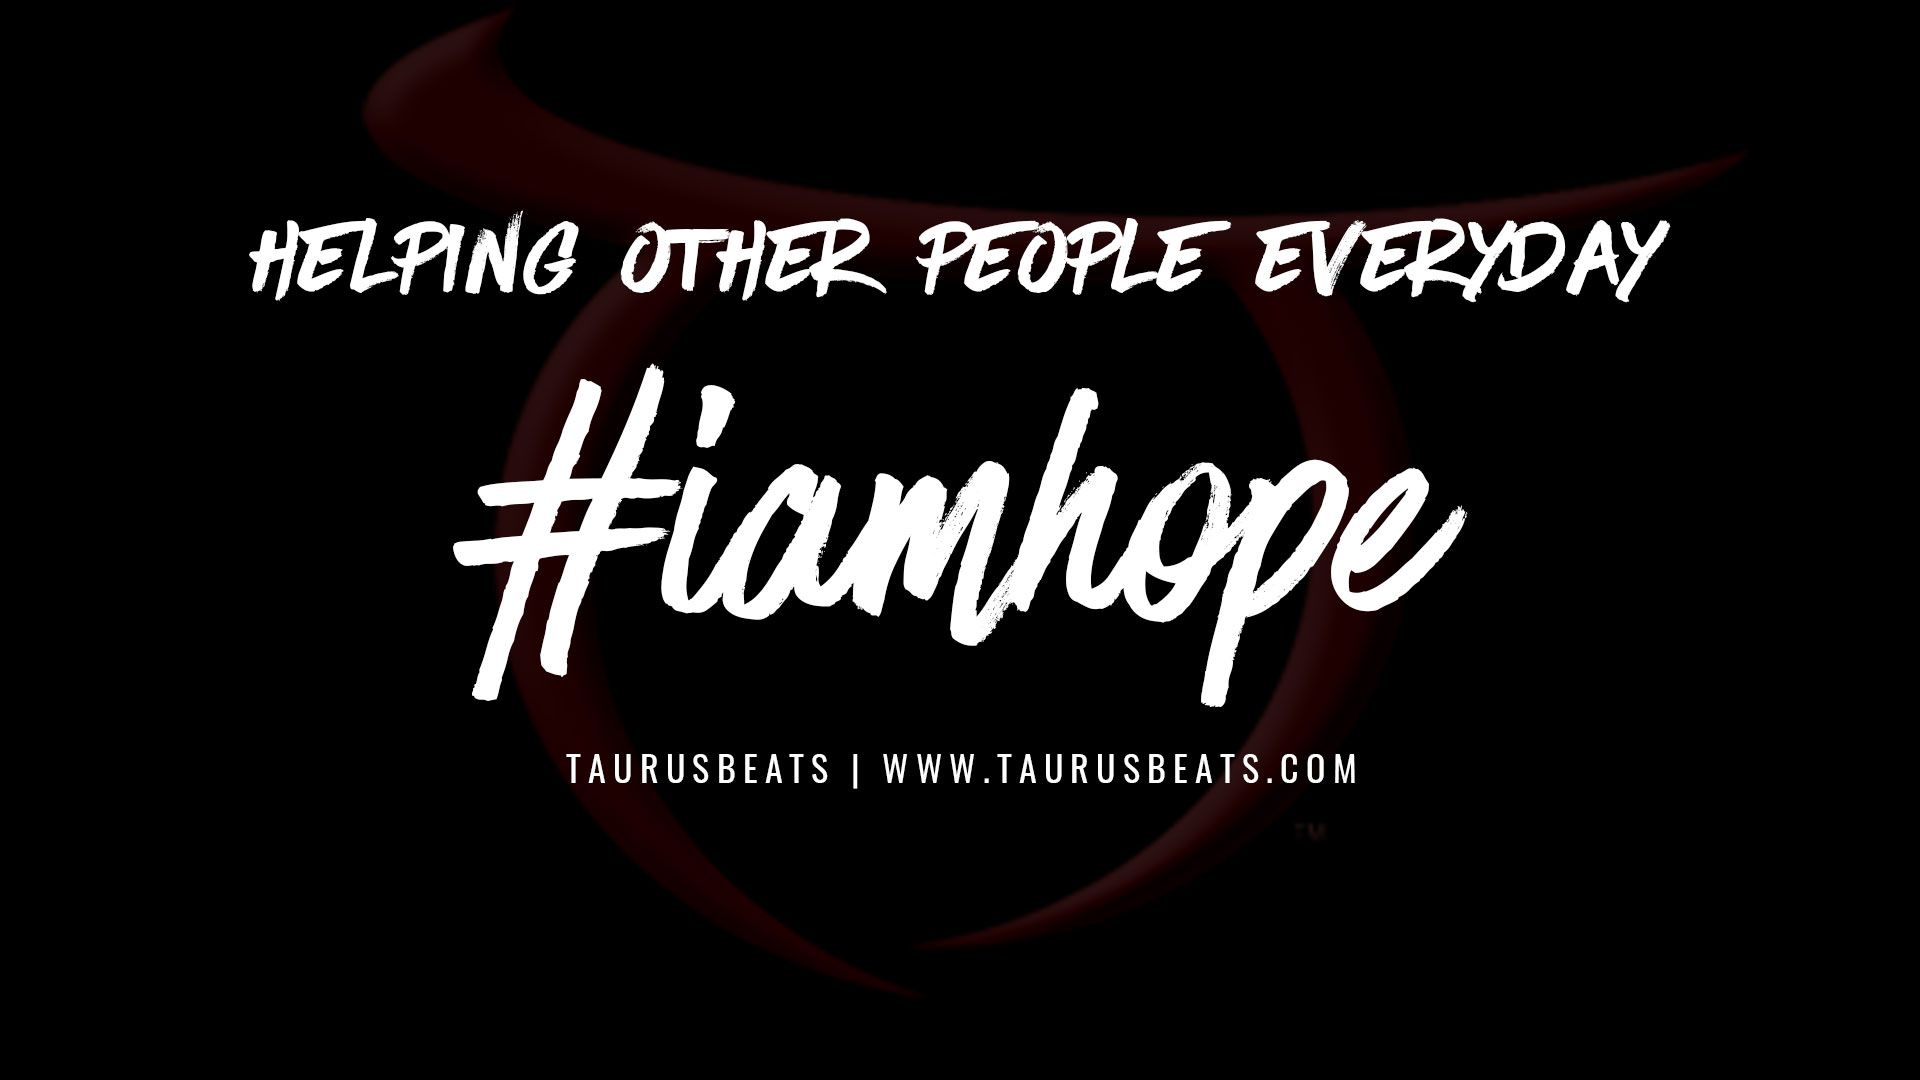 image for #iamhope